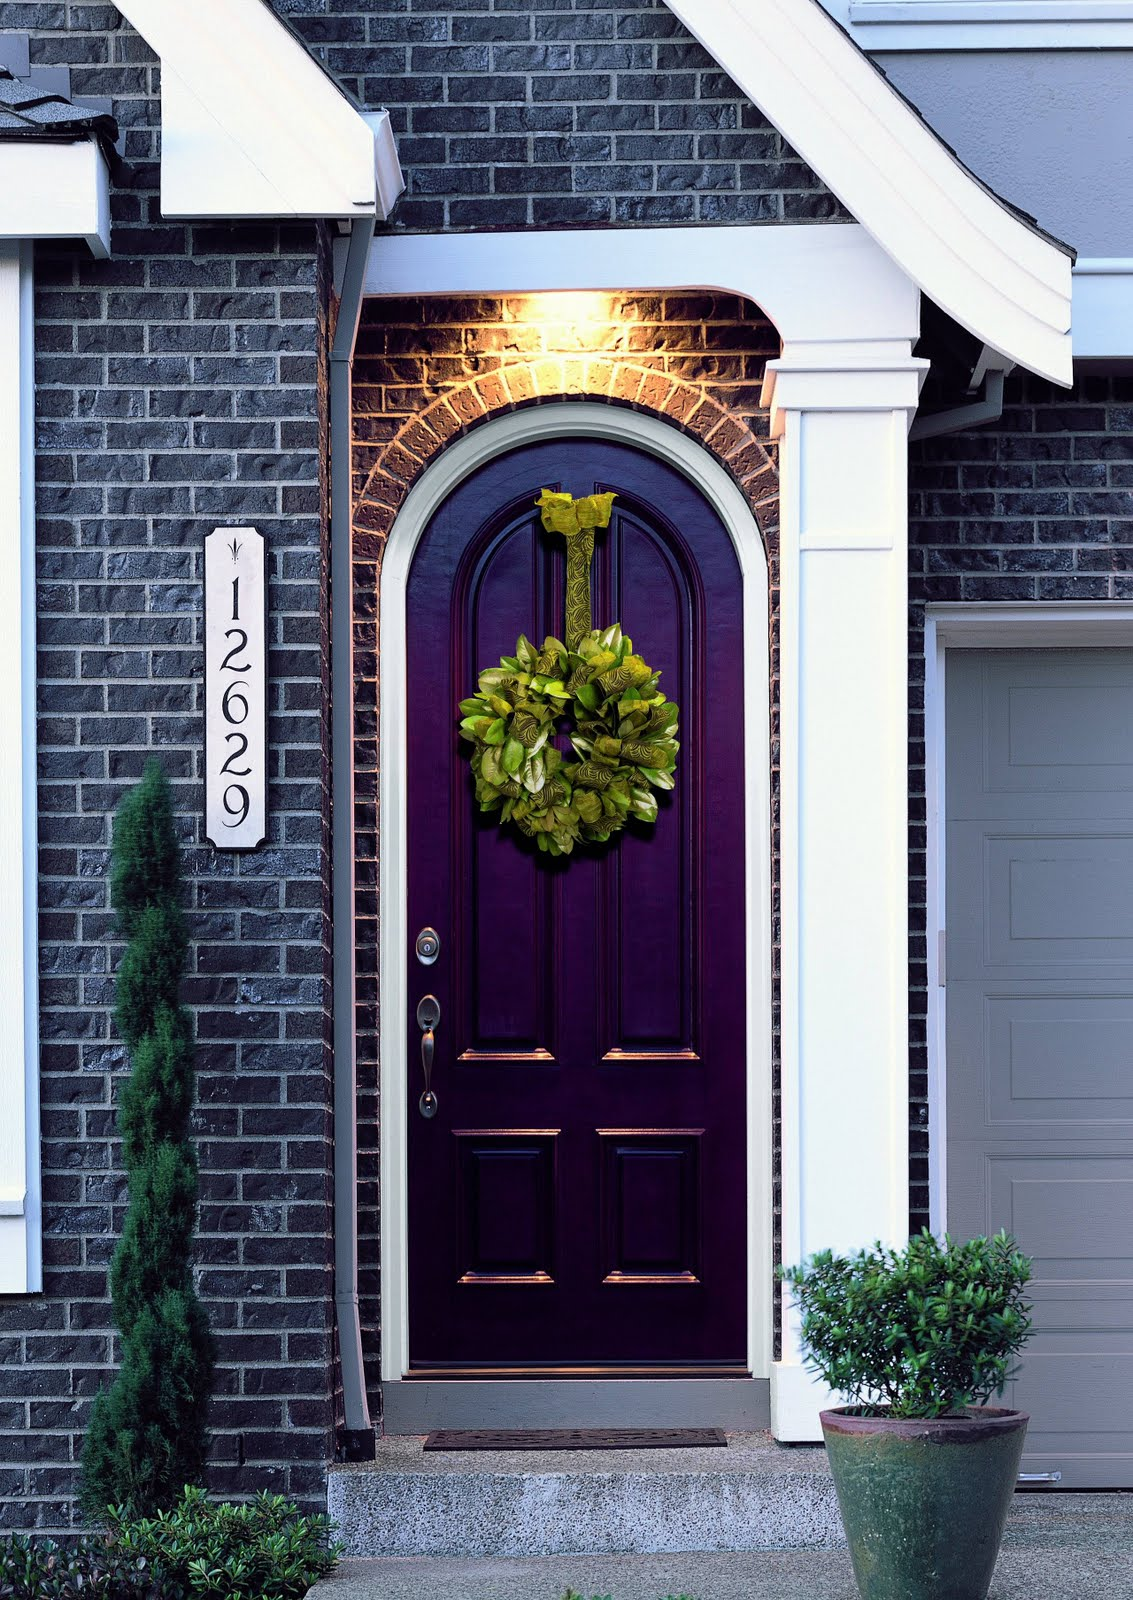 Charmant Good Like A Brightly Colored Front Door. Come On In! Stay Awhile.